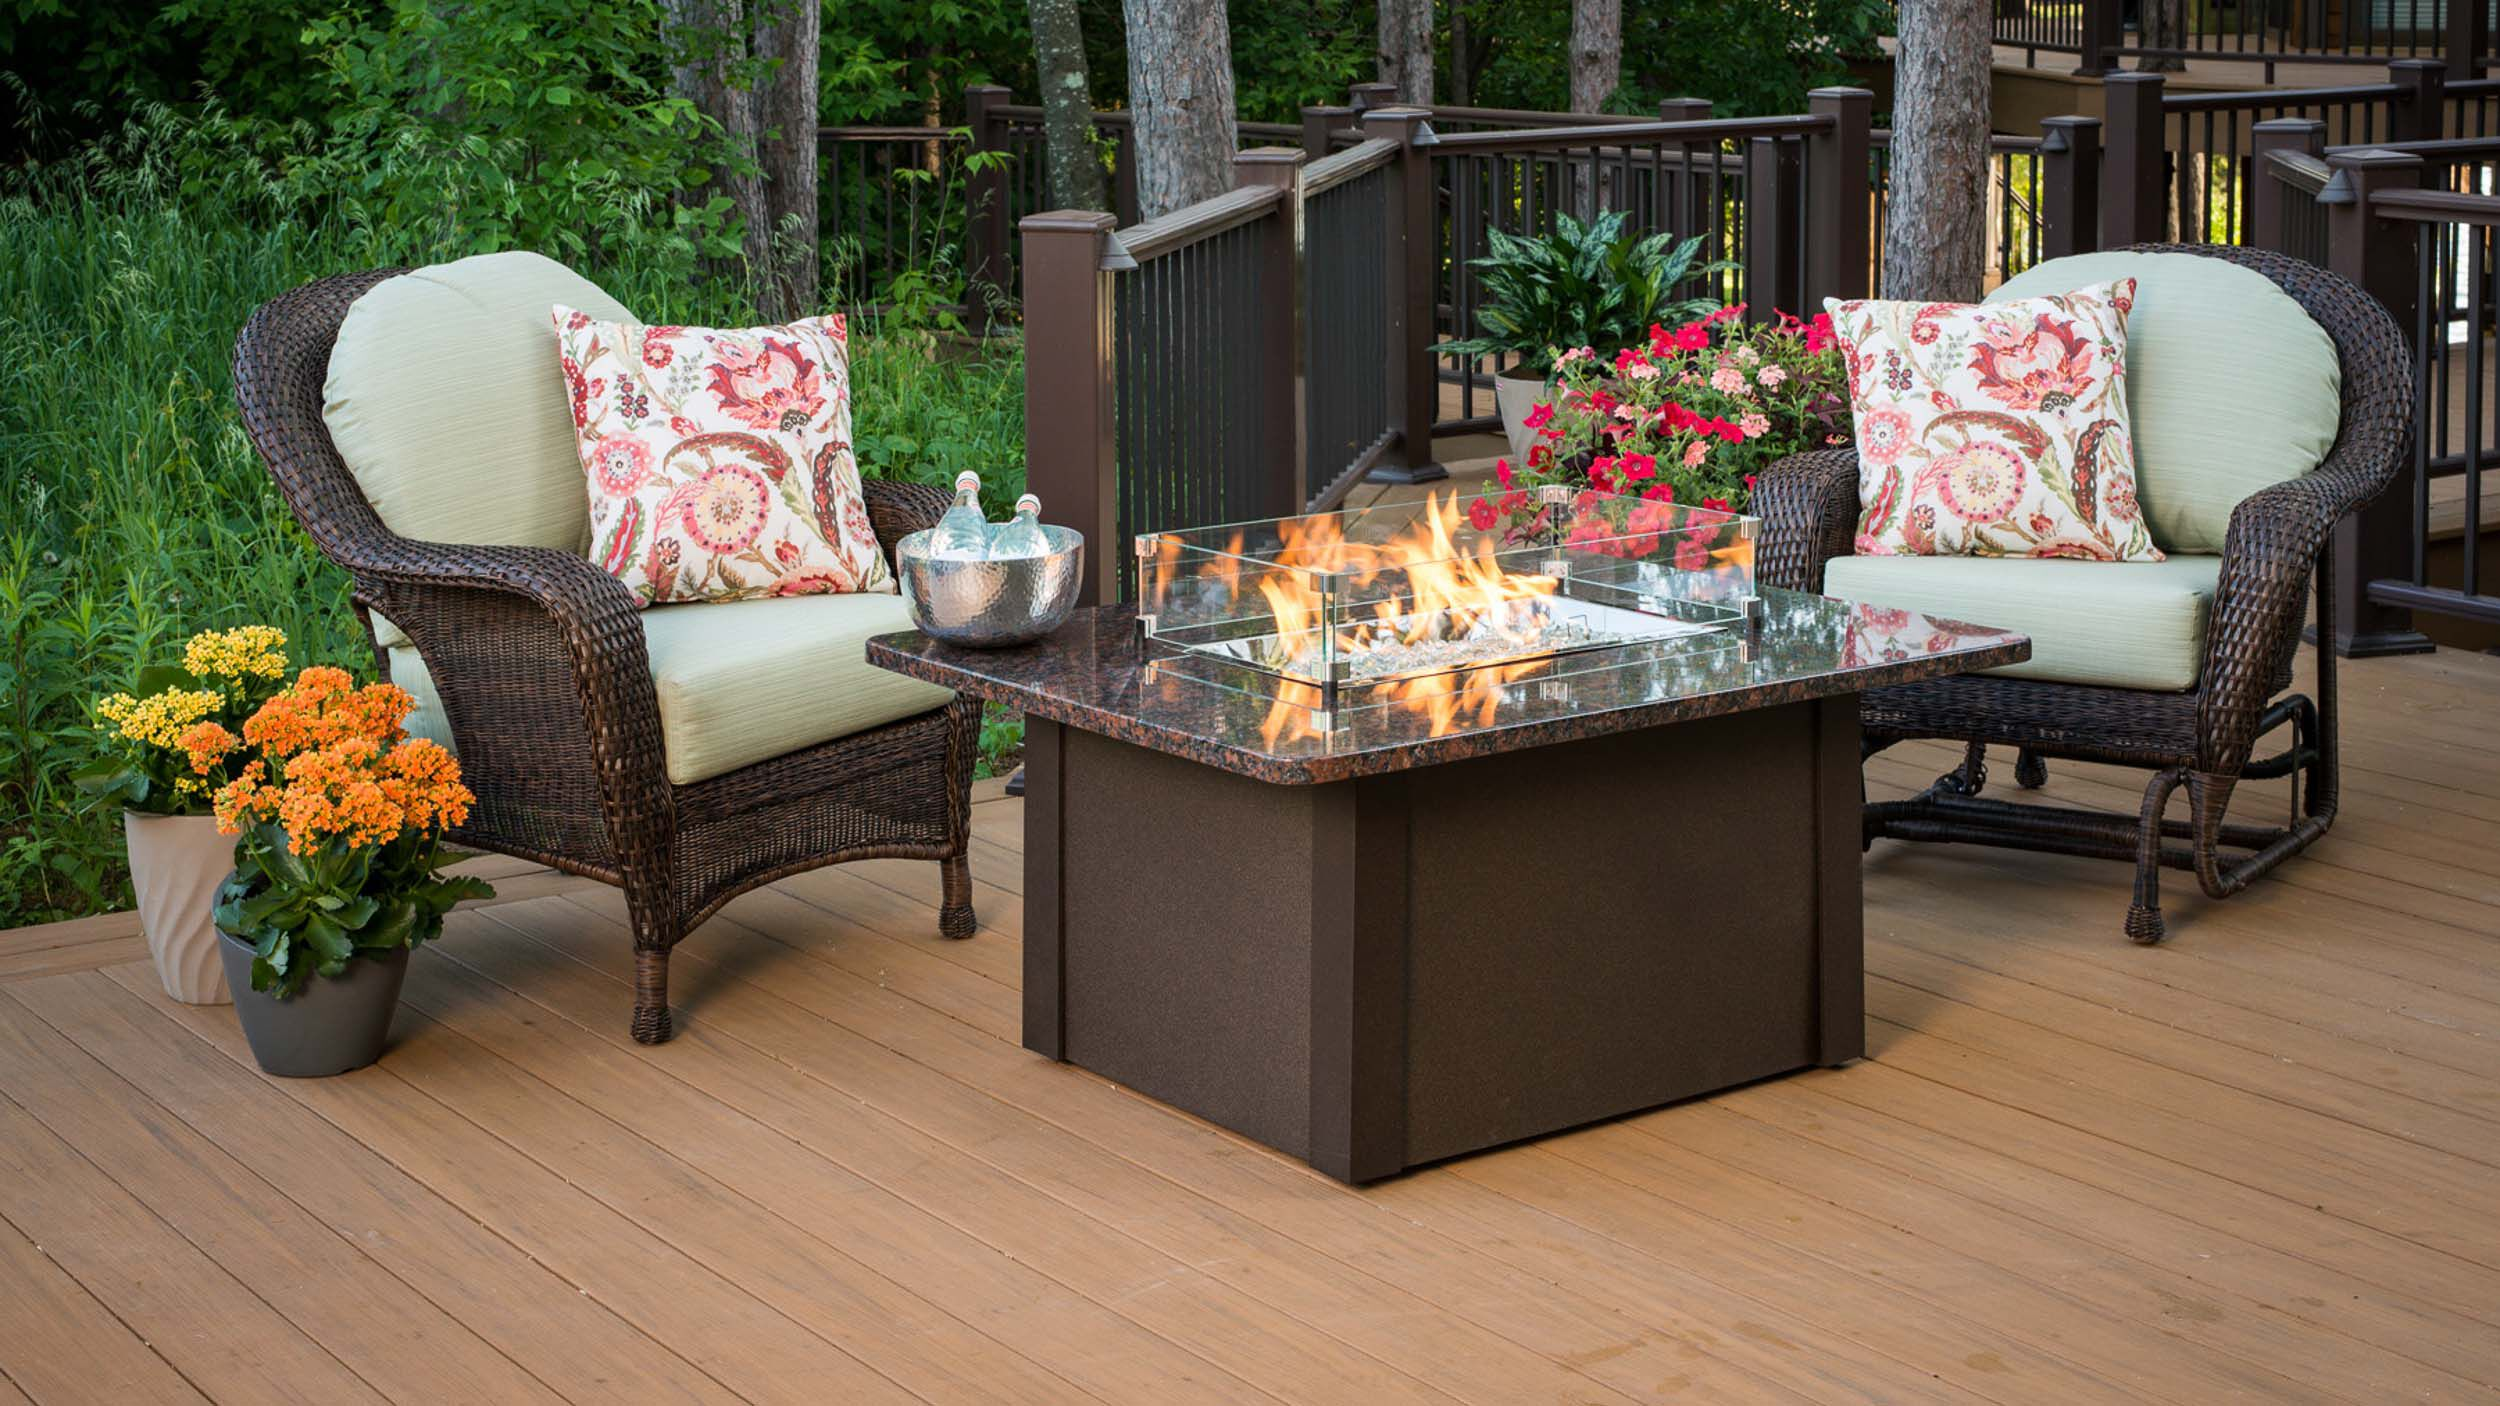 can i put a fire pit on my wood deck